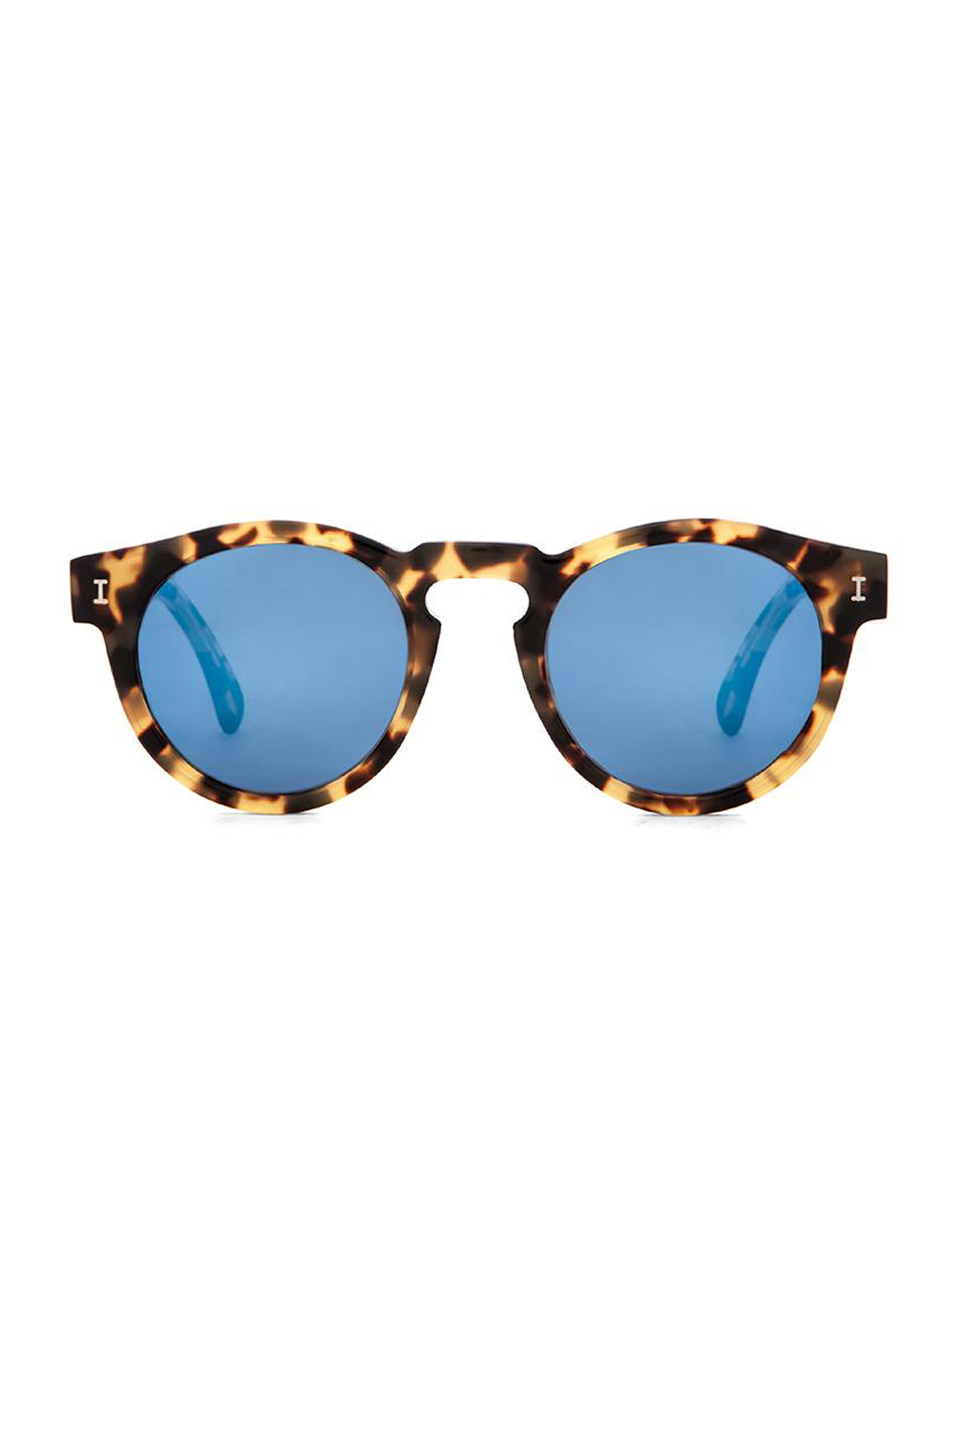 Blue and Tortoise Sunglasses.jpg